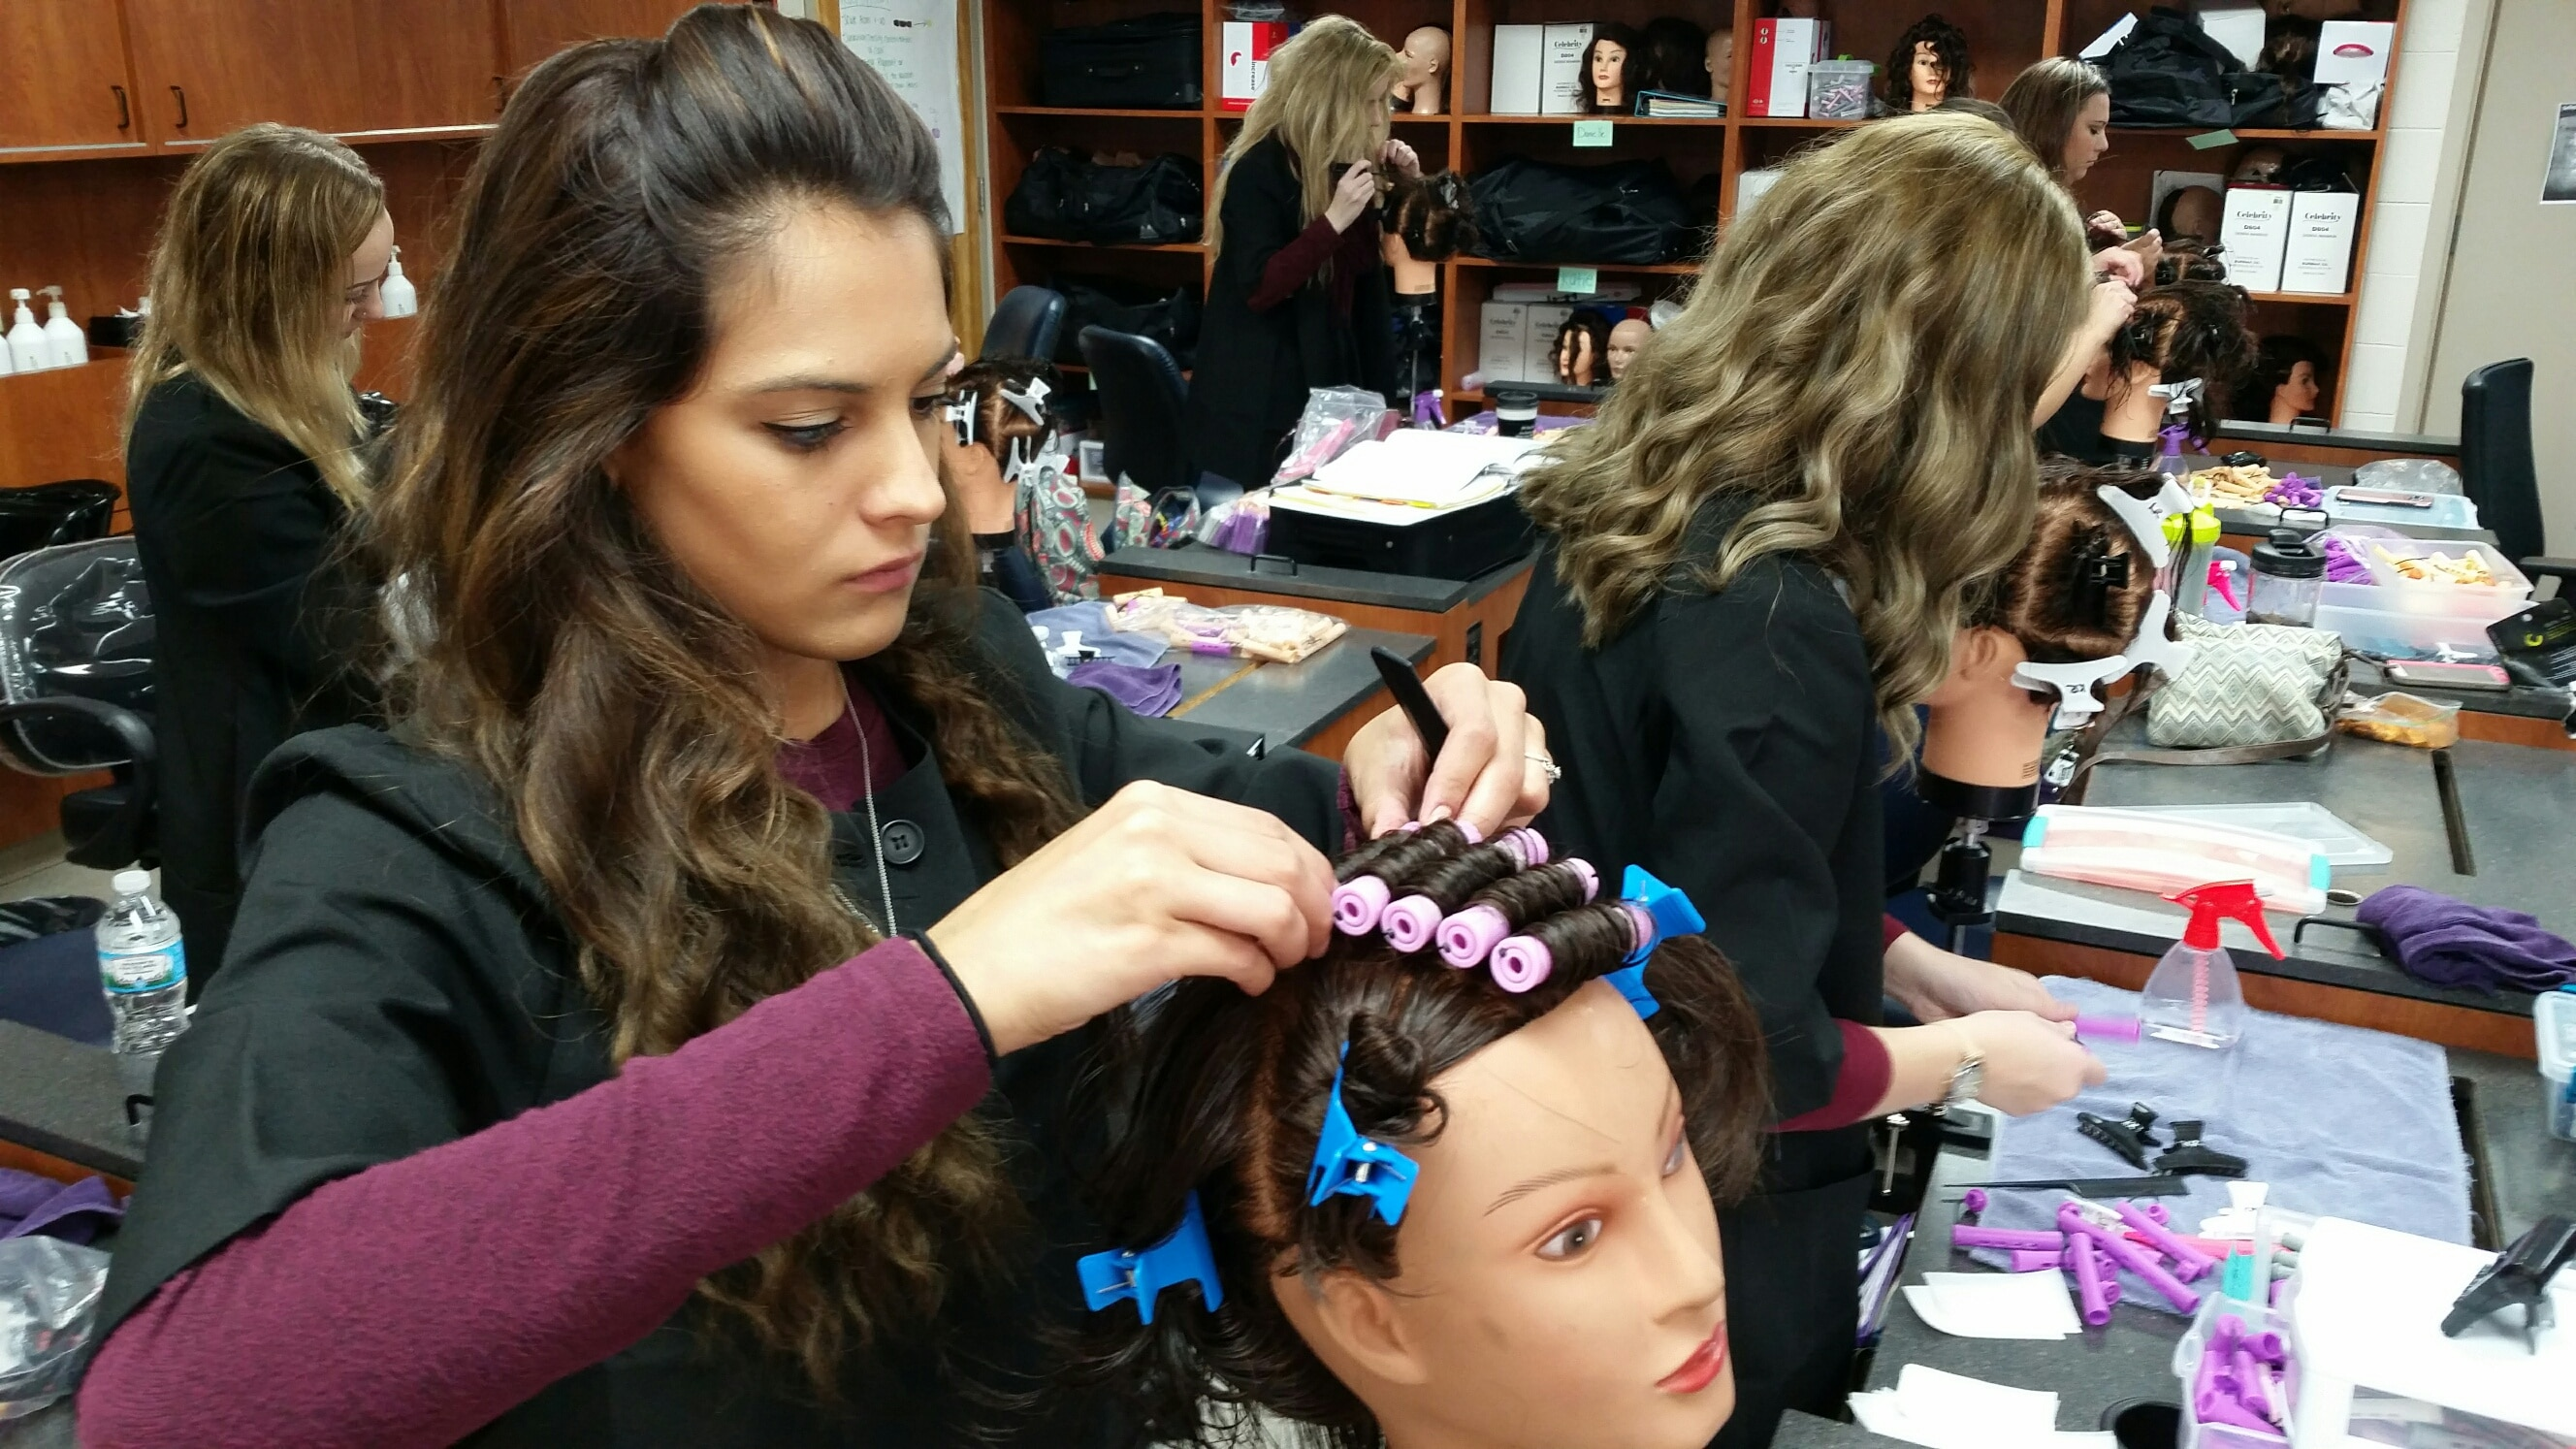 Moraine Park Cosmetology student practicing wrapping perm rods on manikin head